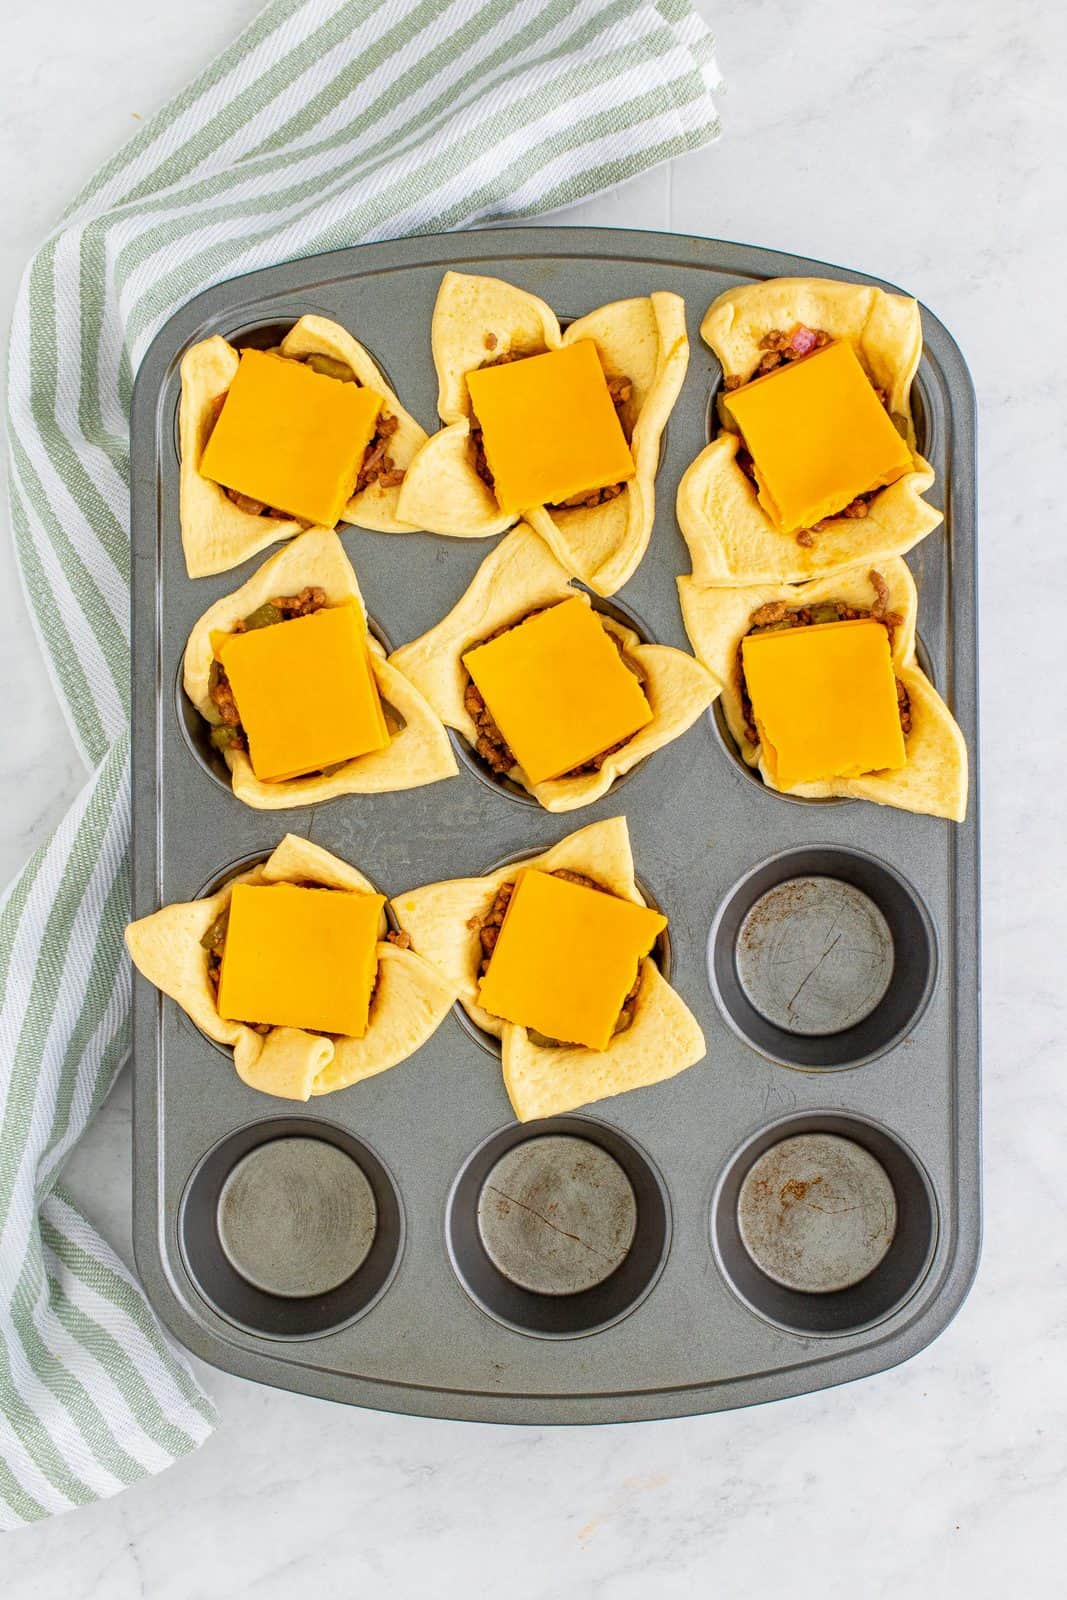 Cheese added to top of ground beef mixture in muffin tin.